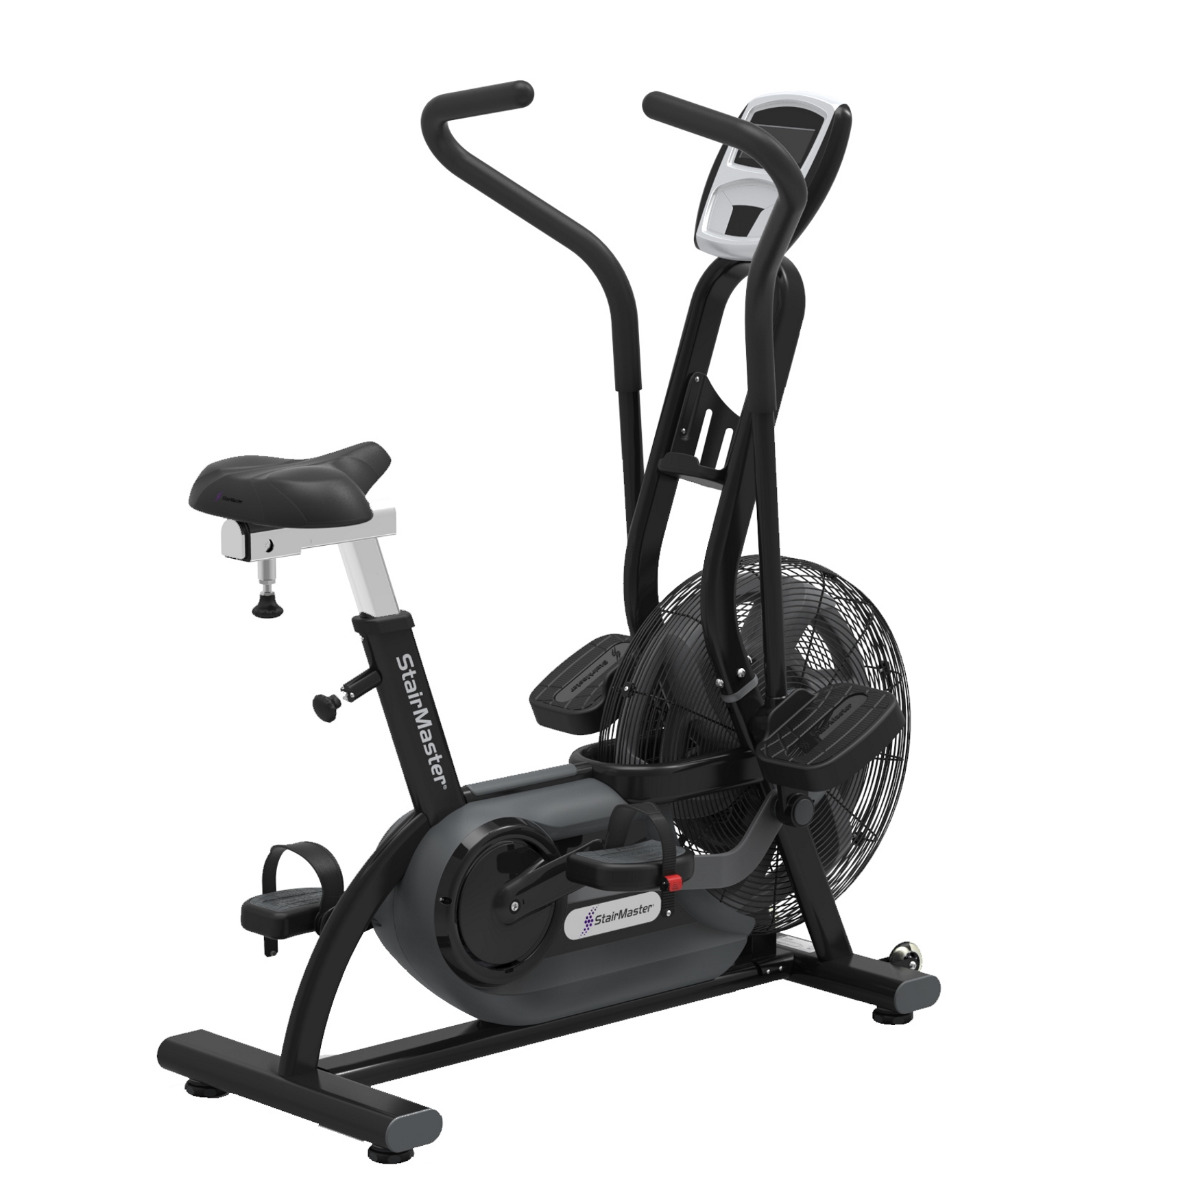 Stairmaster HIIT Bike with HIIT Display